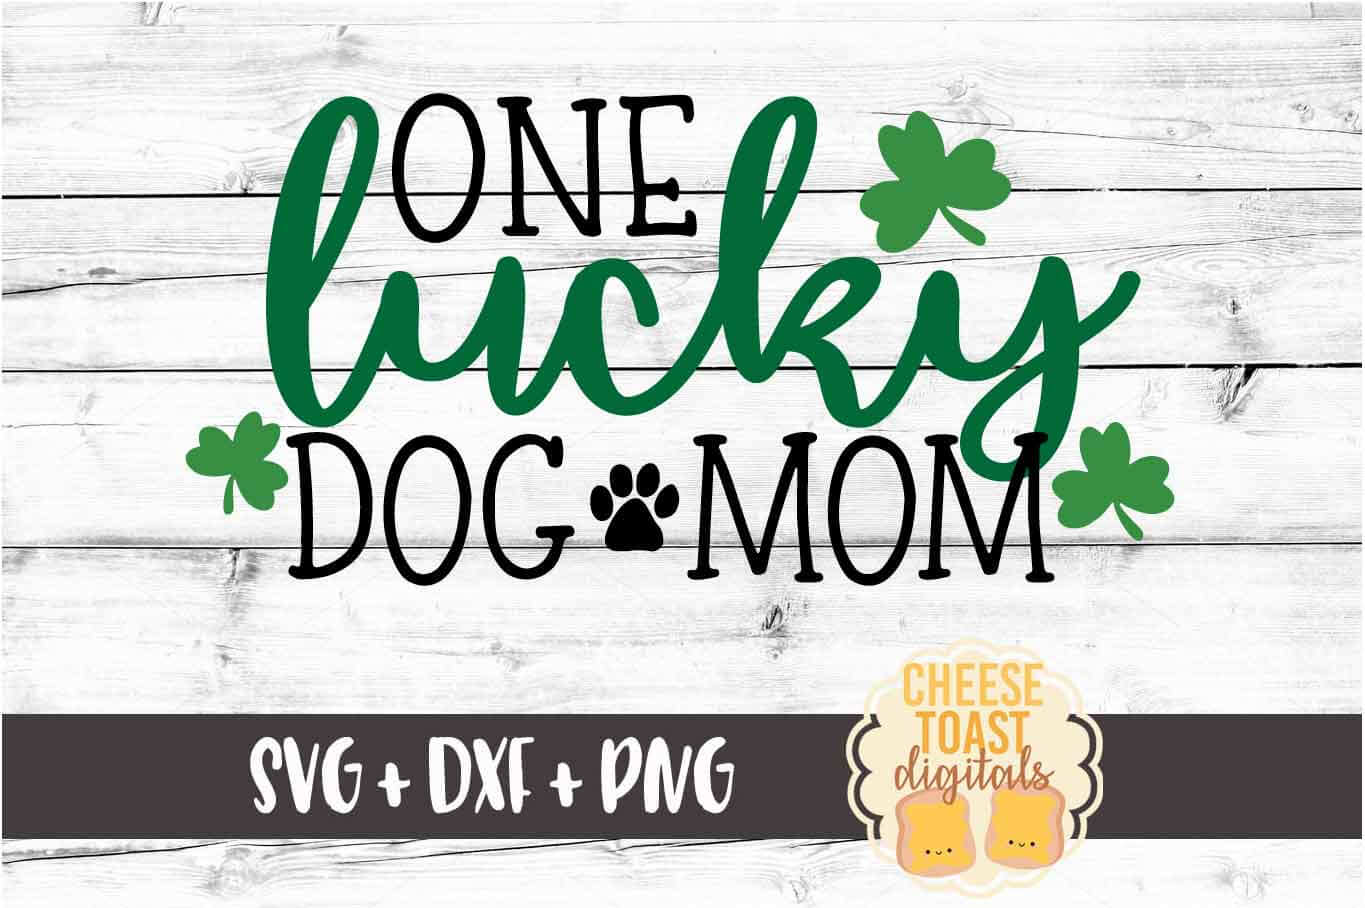 One Lucky Dog Mom - St Patrick's Day - SVG PNG DXF Cut Files example image 2